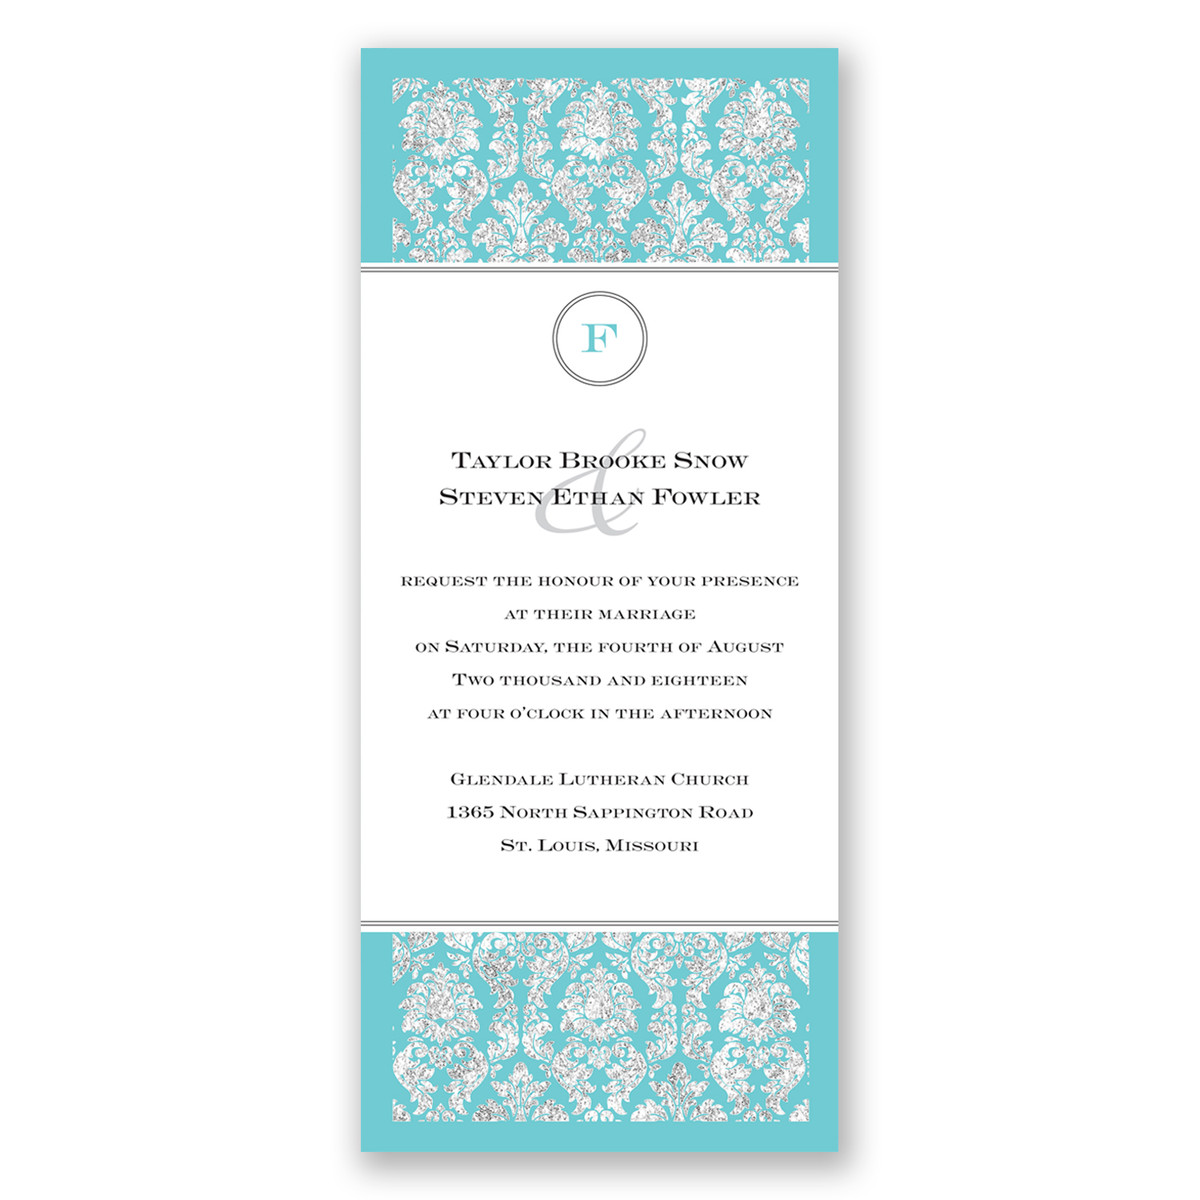 Davids Bridal Wedding Invitations 010 - Davids Bridal Wedding Invitations